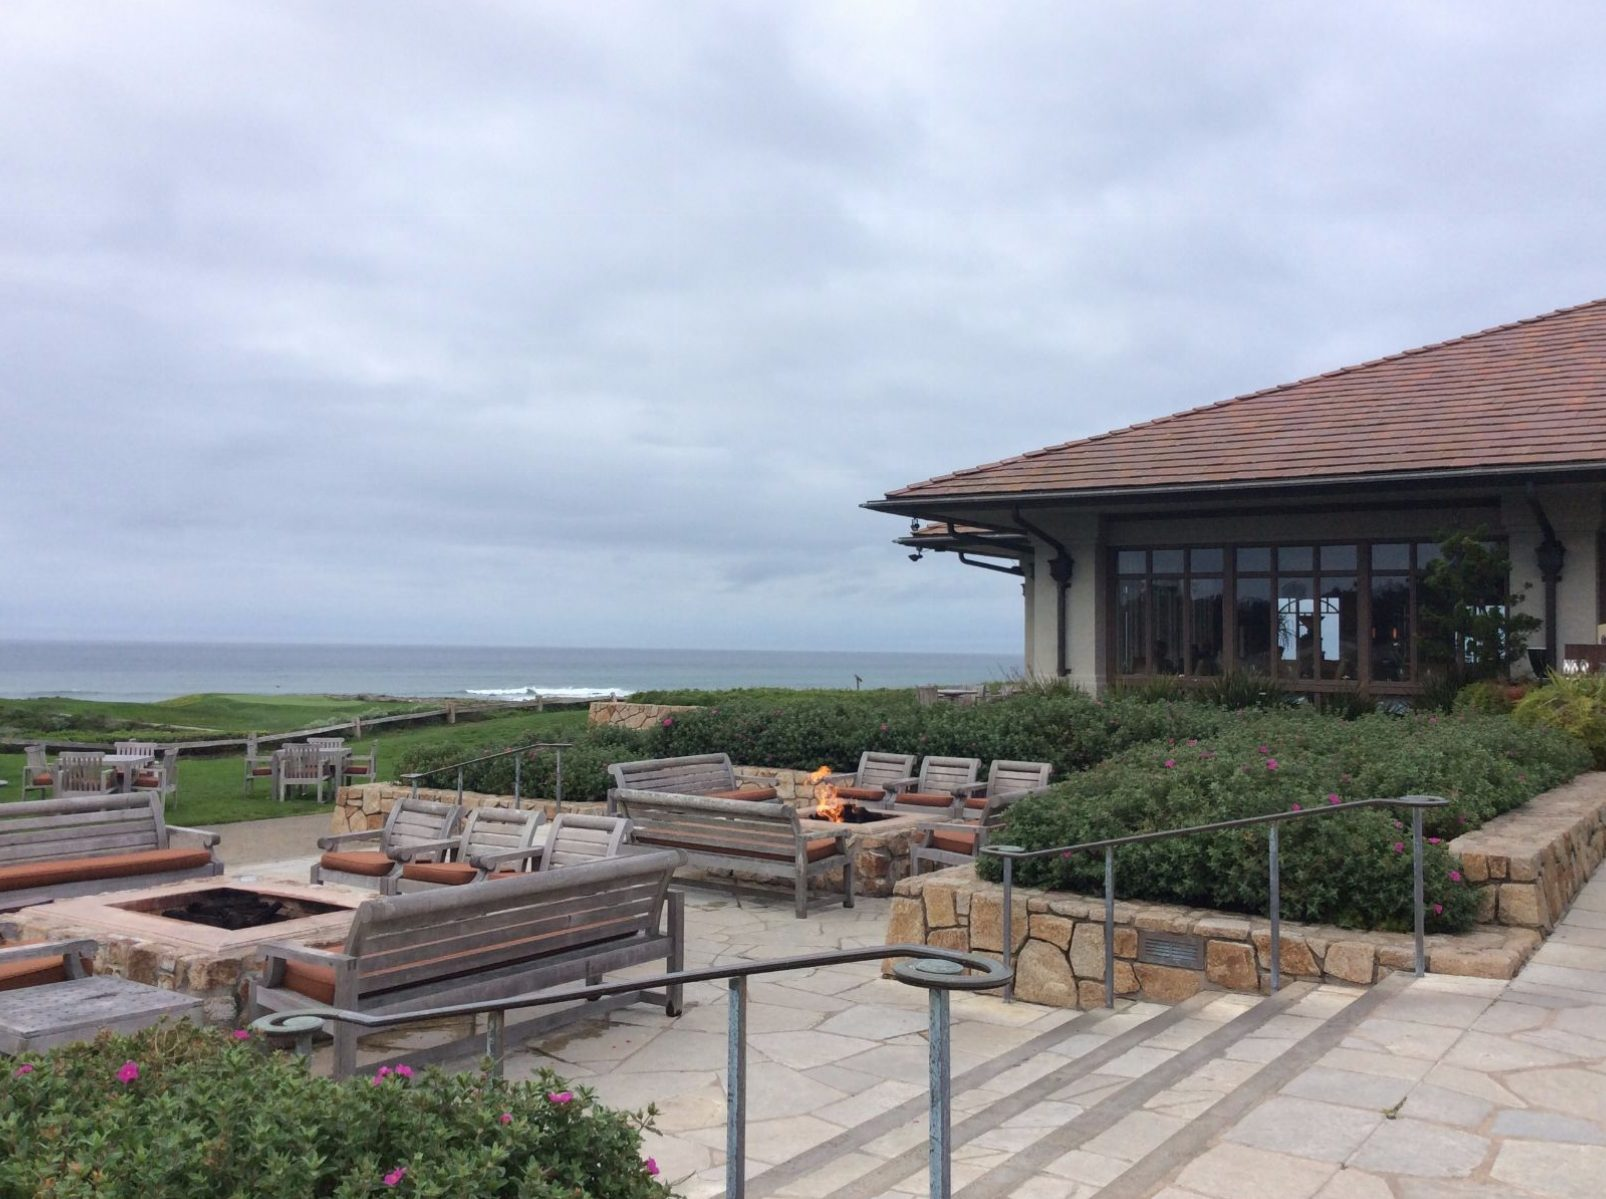 Inn at Spanish Bay Firepit with Oceanview on Patio where Bagpipes Play